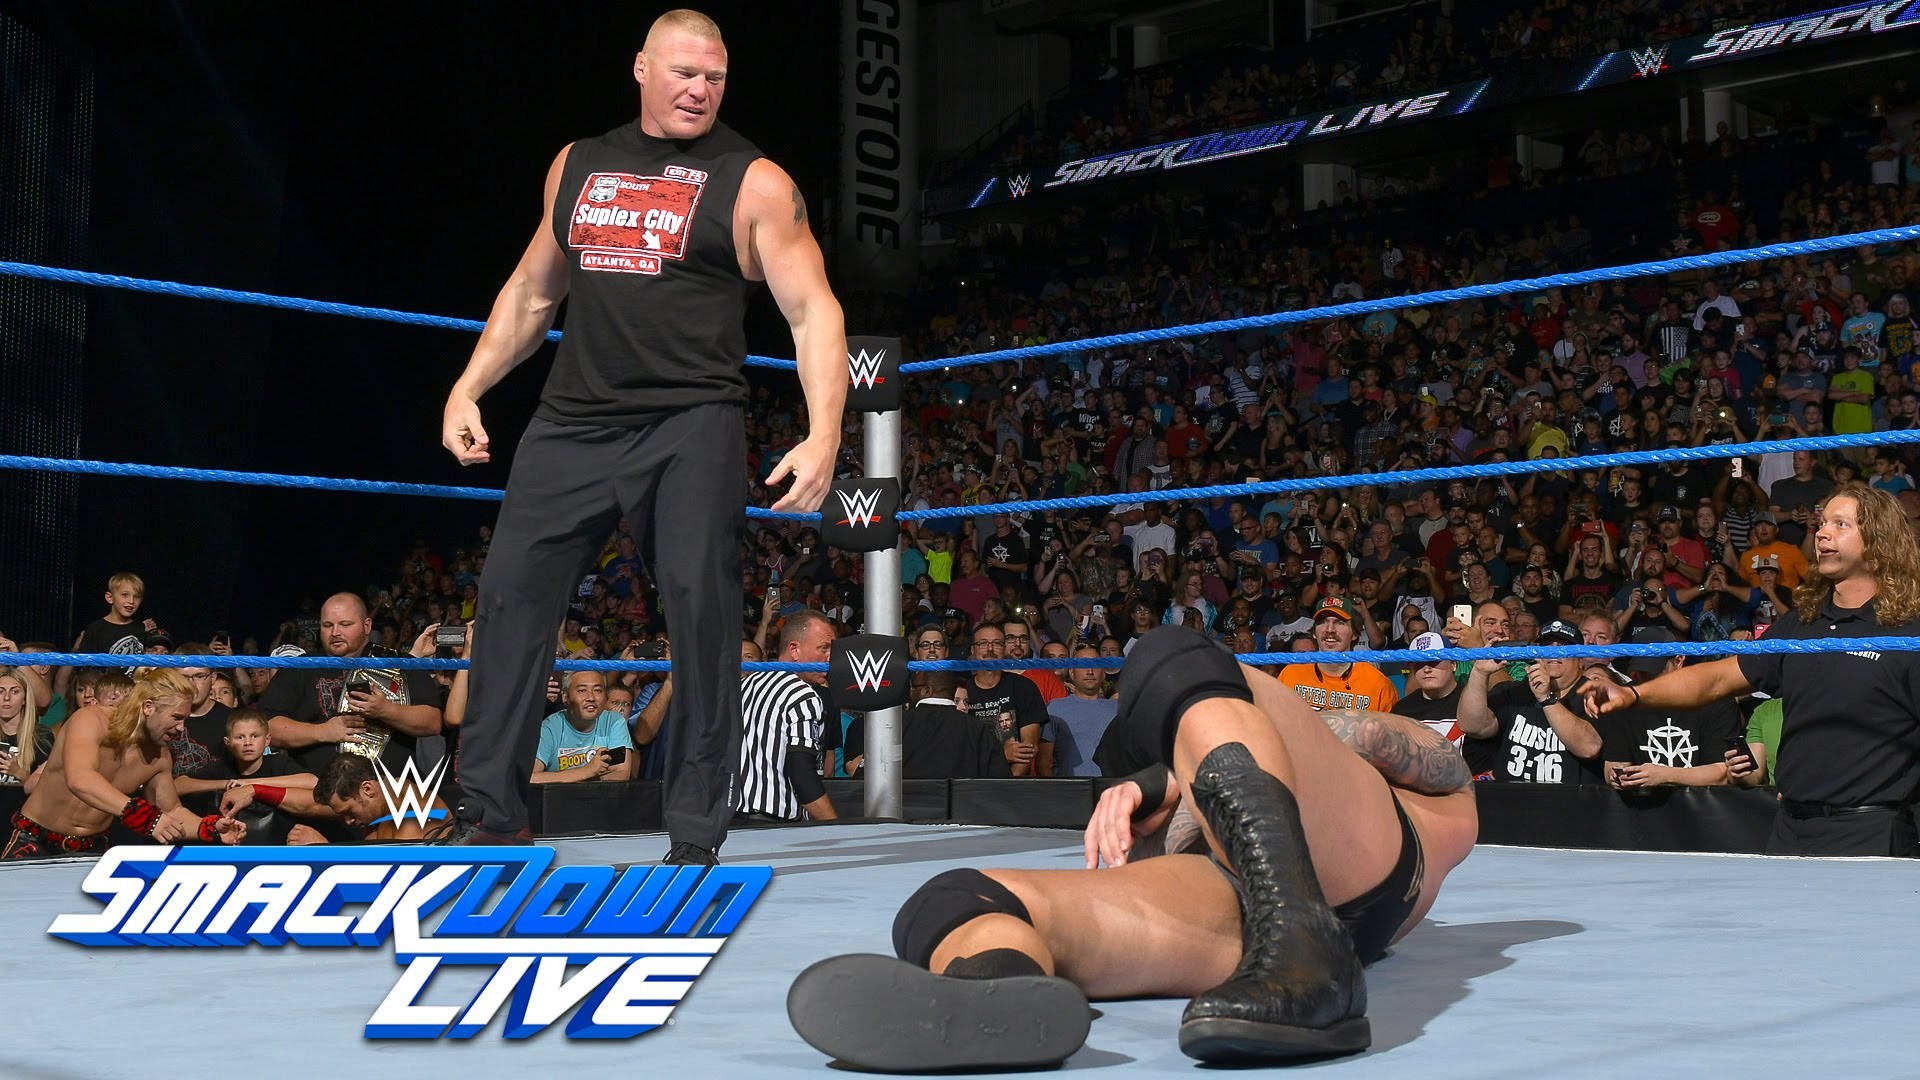 1920x1080 Brock Lesnar invades SmackDown Live: SmackDown Live, Aug. 2, 2016 - YouTube